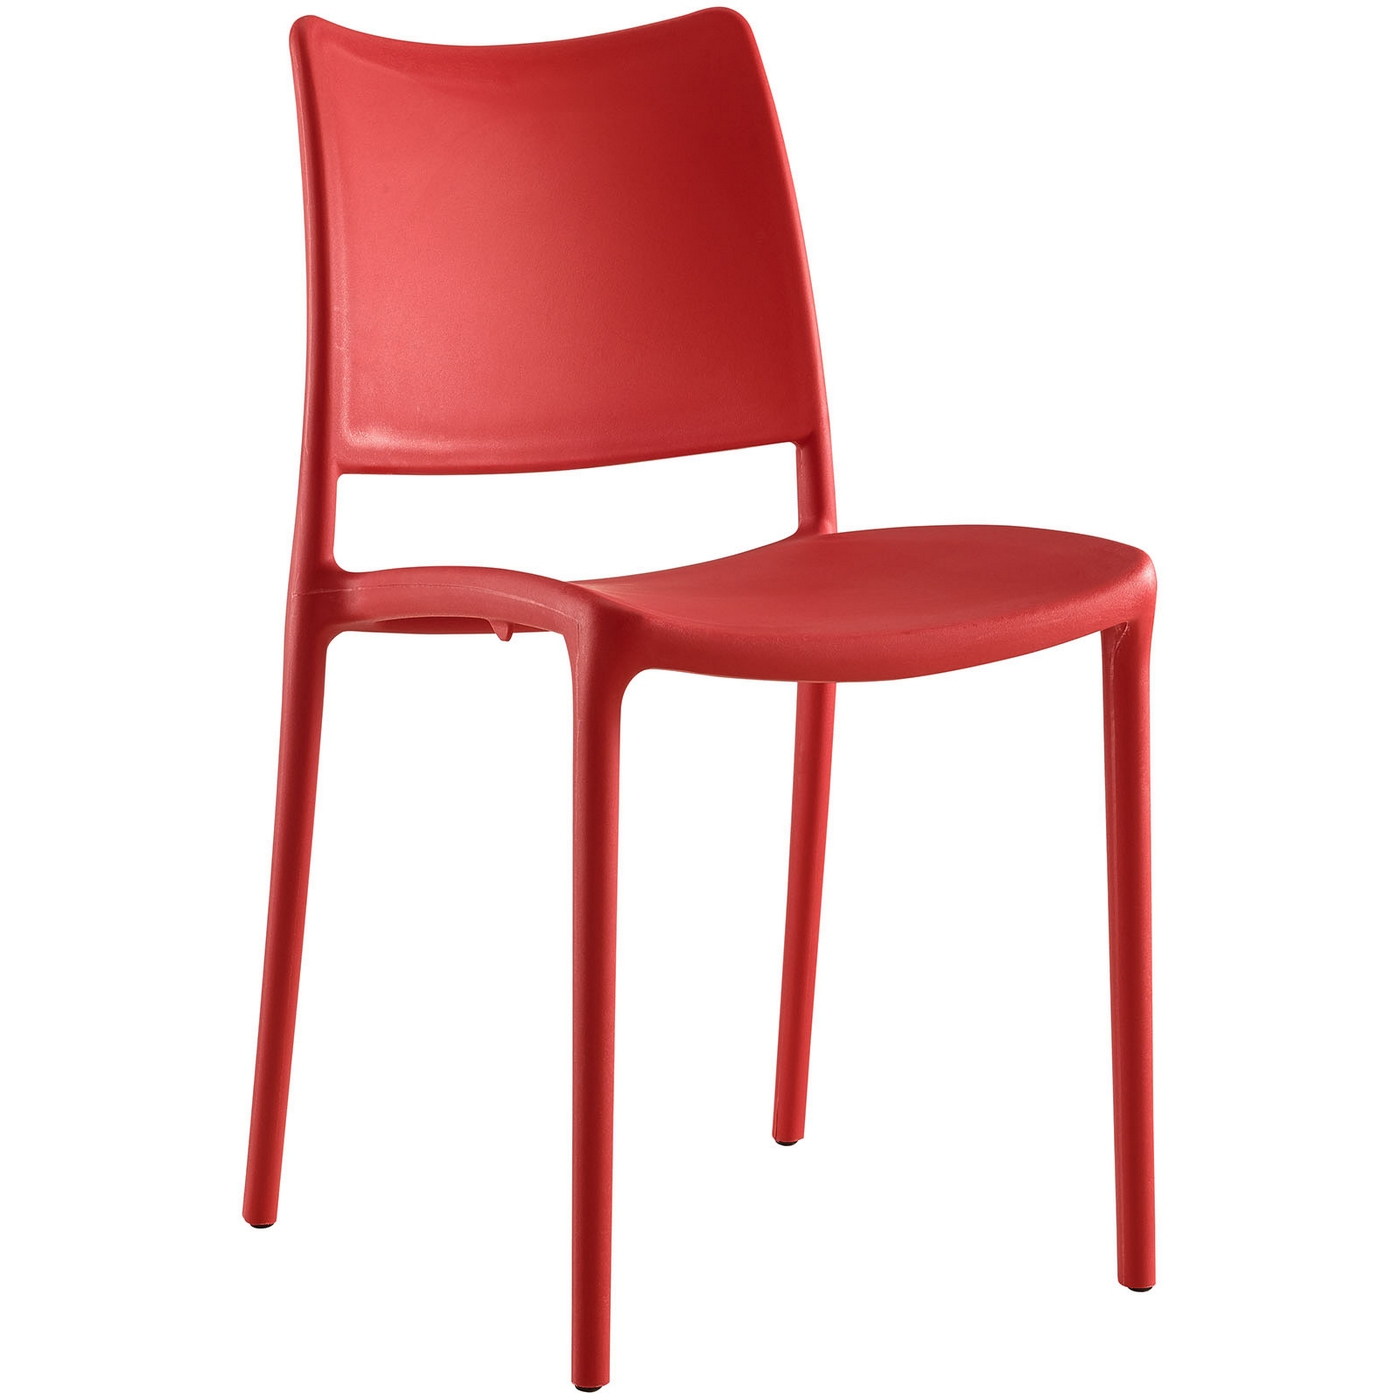 Plastic Dining Chairs Hipster Contemporary Stackable Plastic Dining Side Chair Red